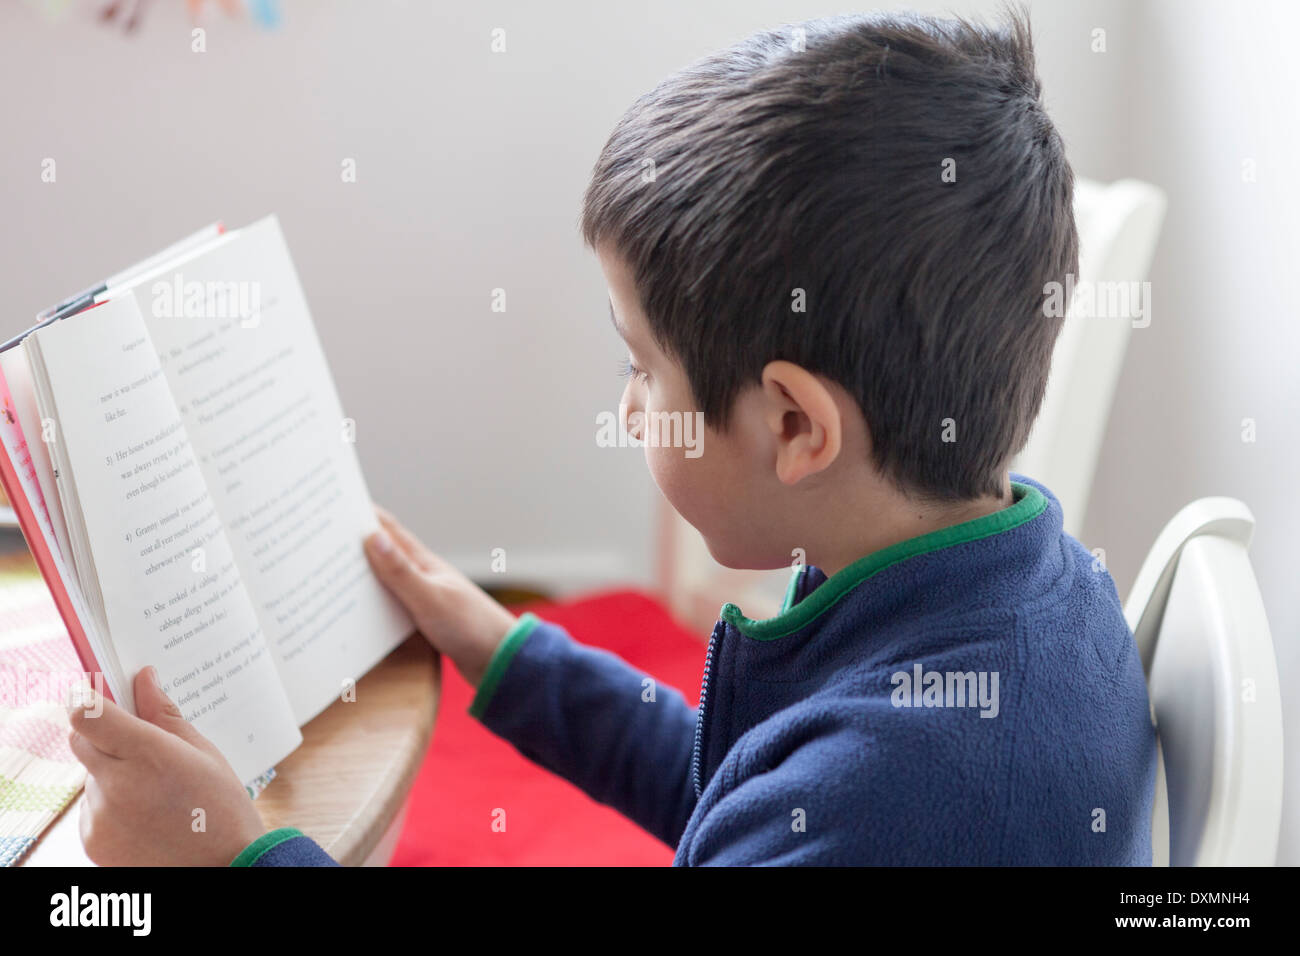 Young boy reads a book - Stock Image